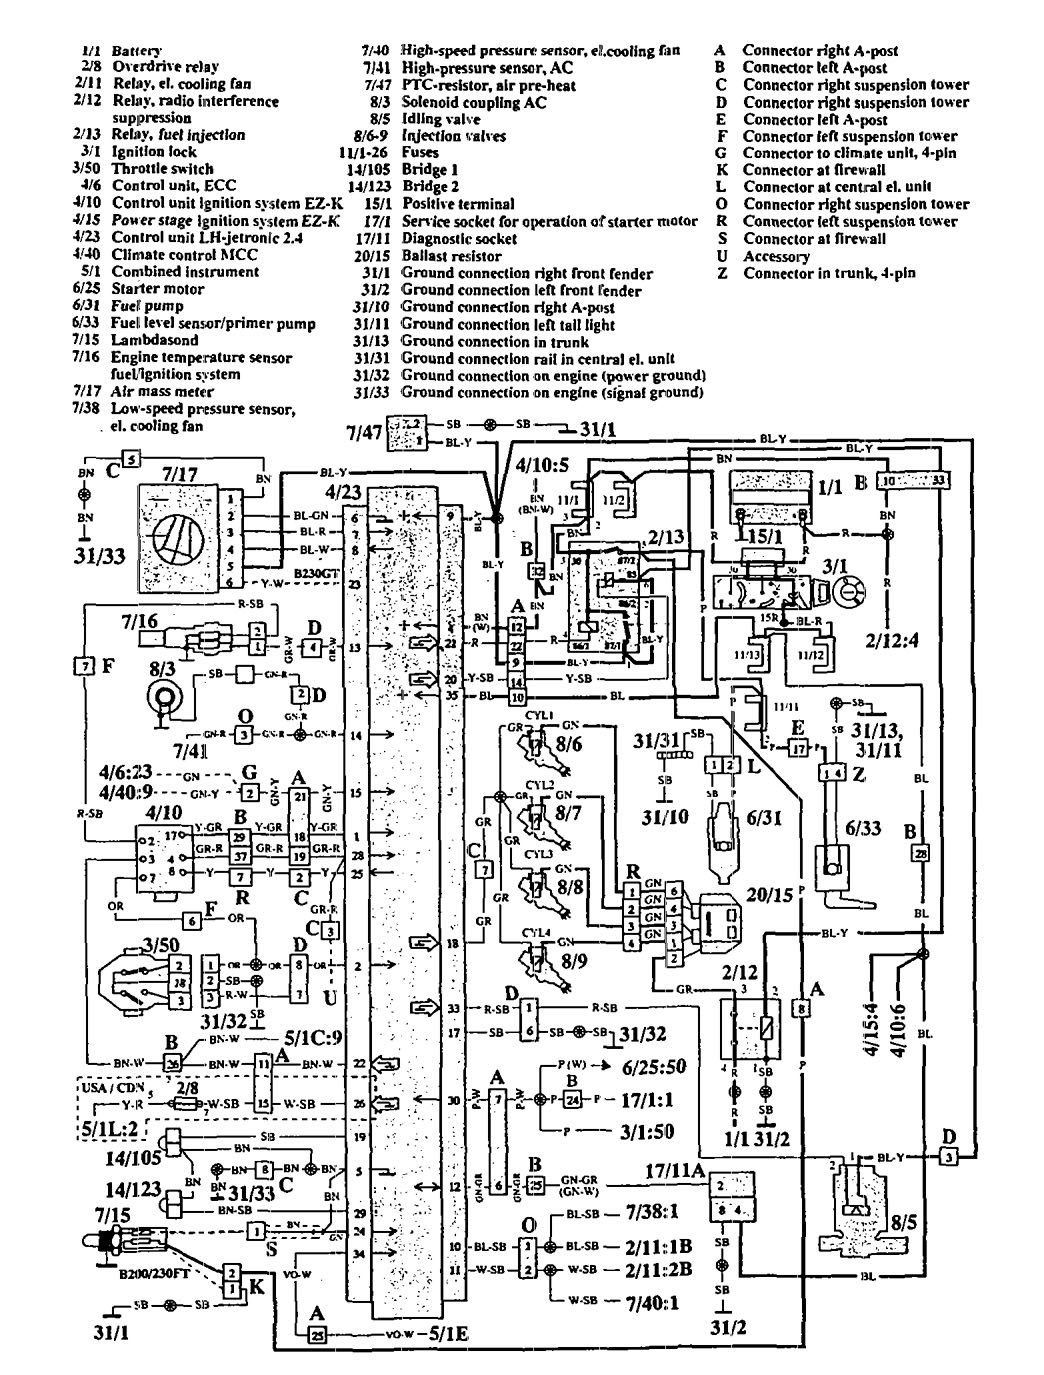 volvo 940 wiring diagram fuel controls v2 2 1992 hu 613 wiring diagram boat wiring diagram \u2022 wiring diagrams j Jon Boat Lowe 1960 at creativeand.co